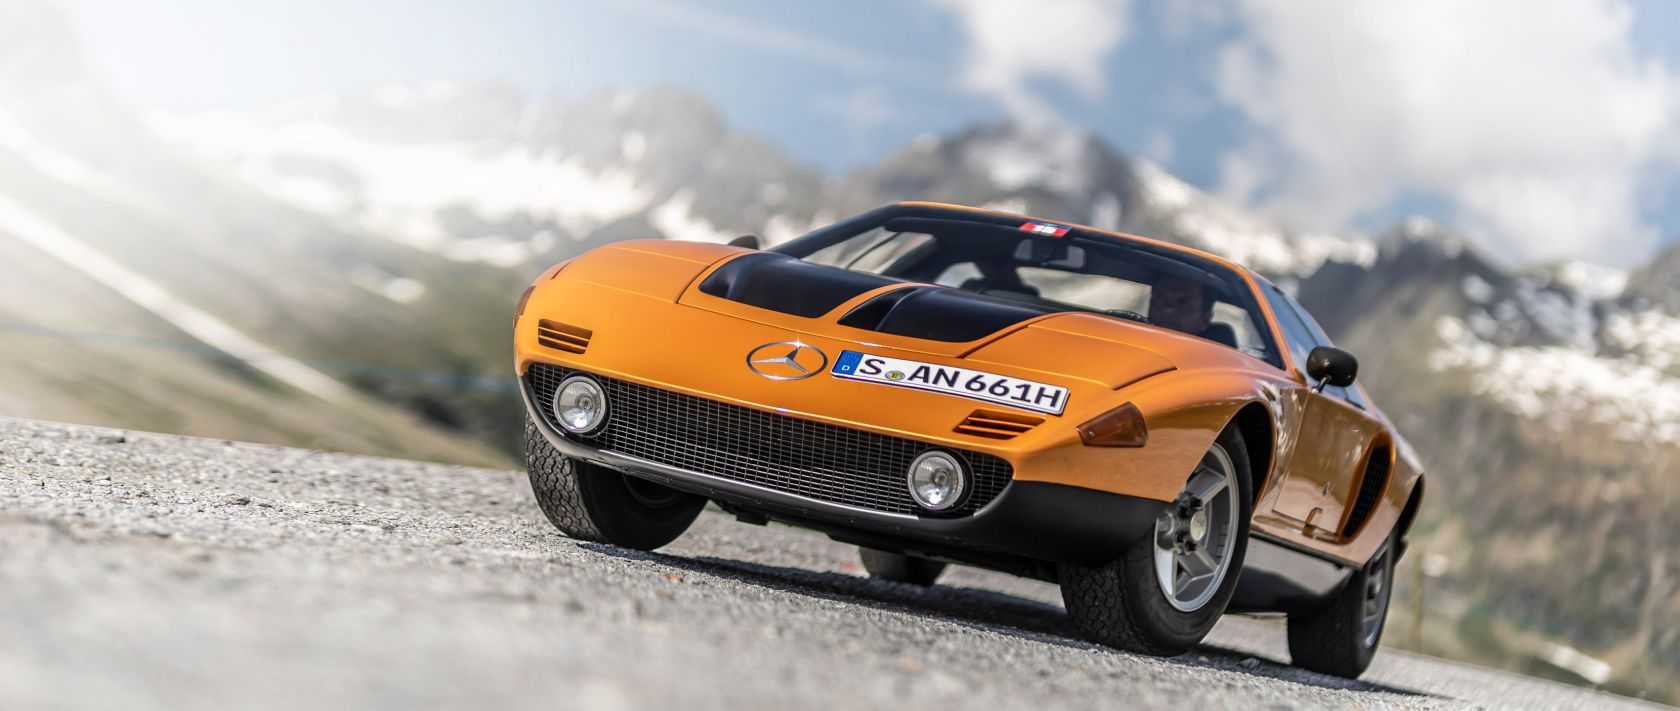 The Mercedes-Benz C 111 was the star of this year's Silvretta Classic 2019 classic car rally.